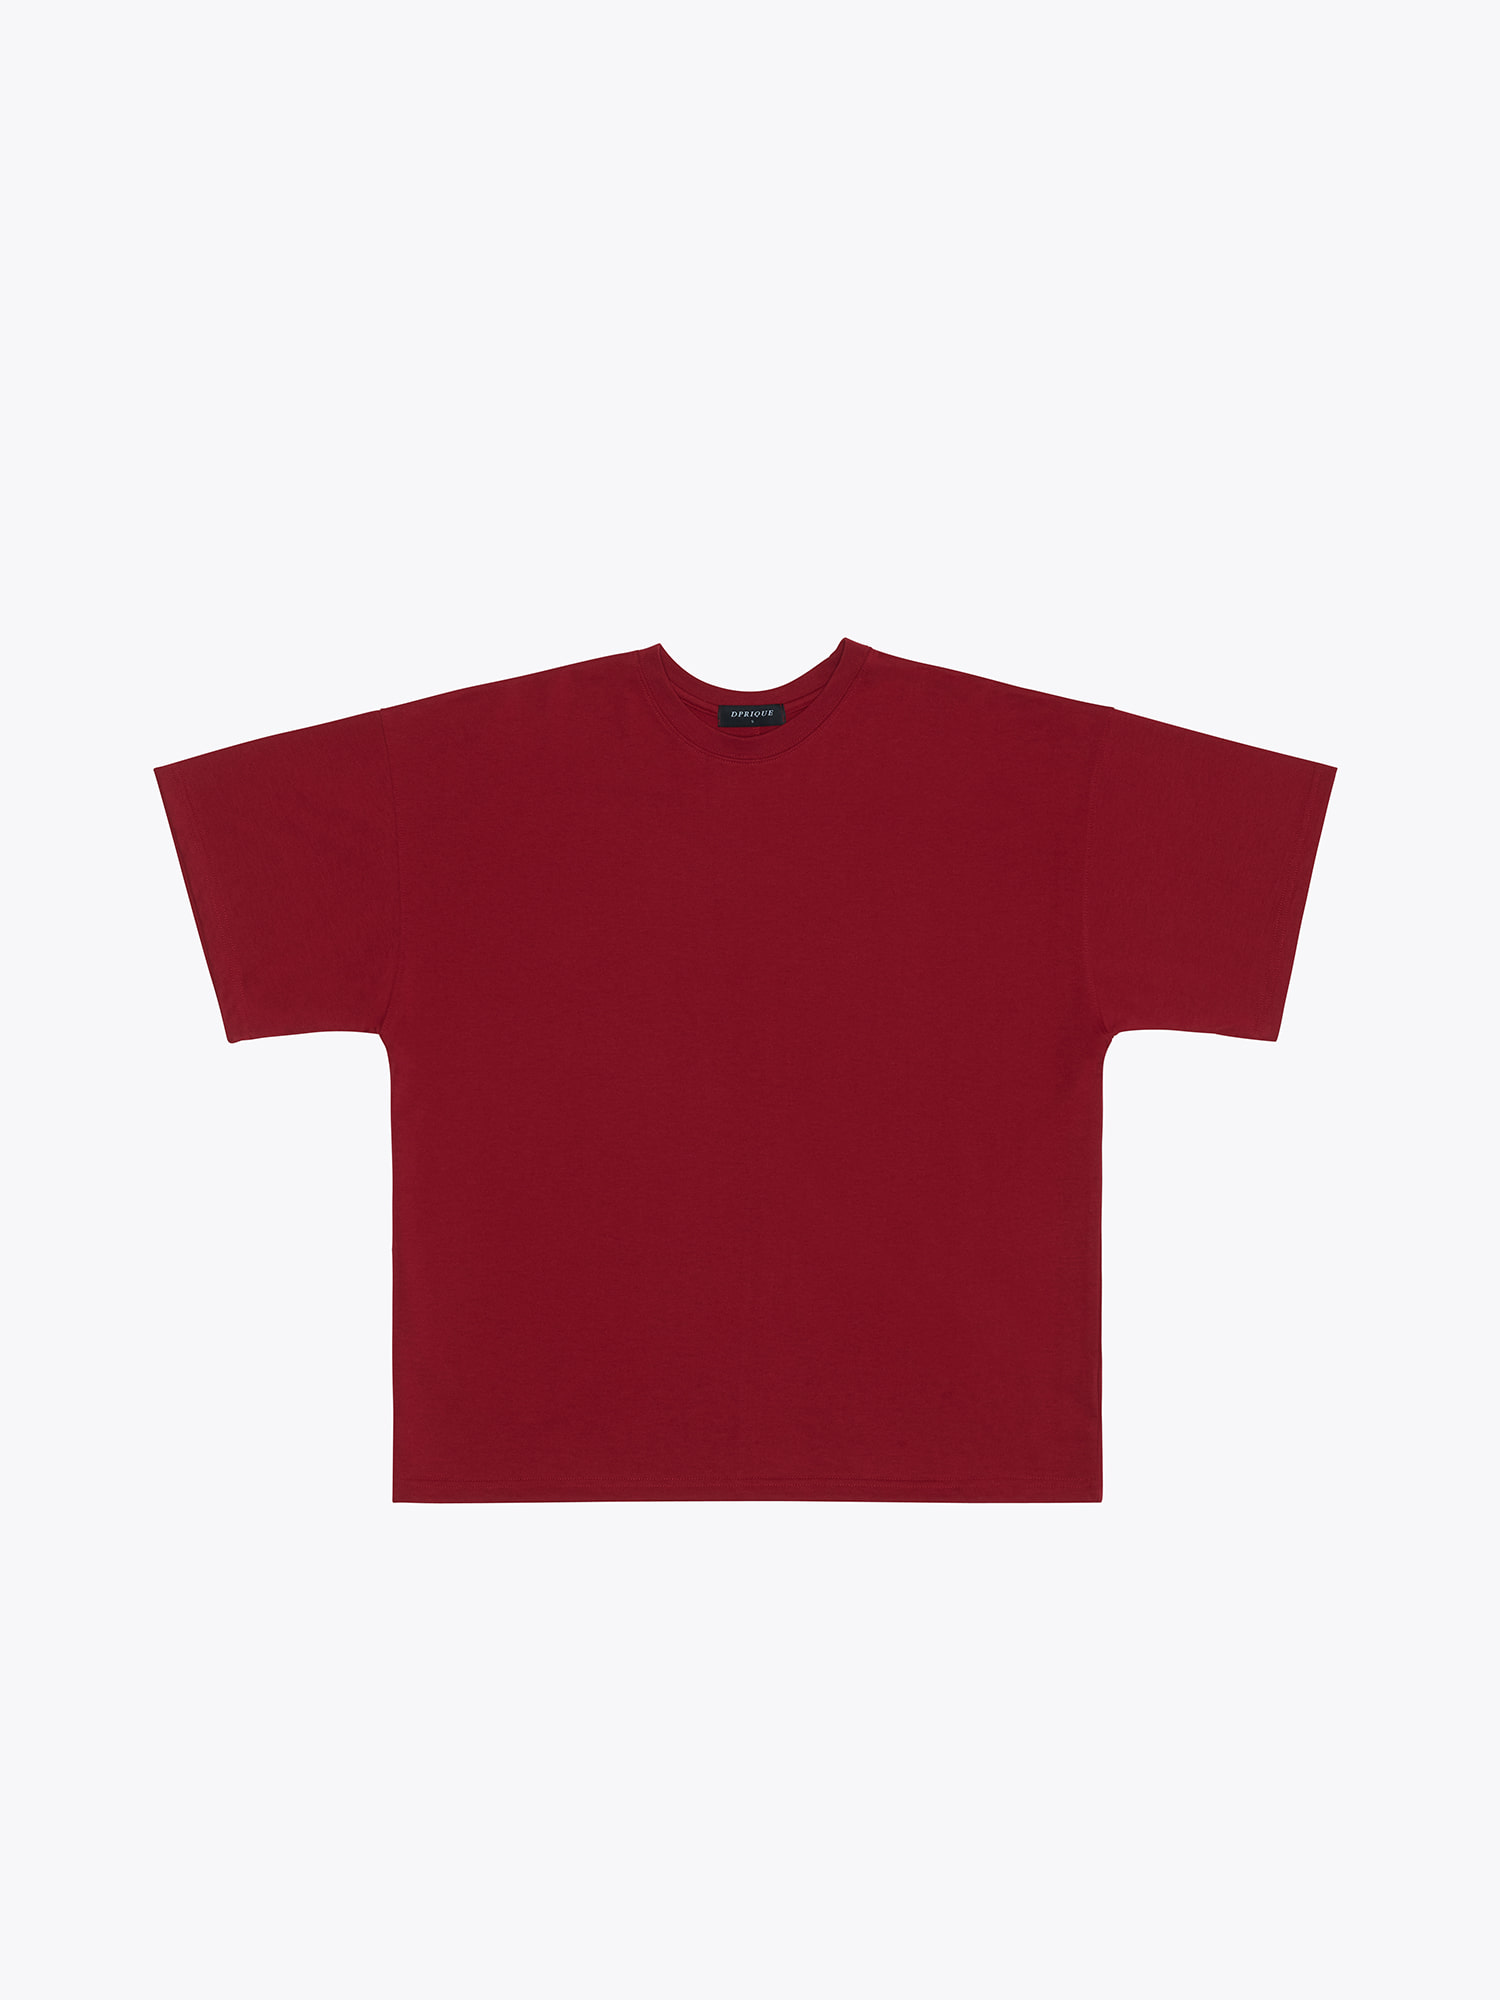 05 Oversized T-Shirt - Red